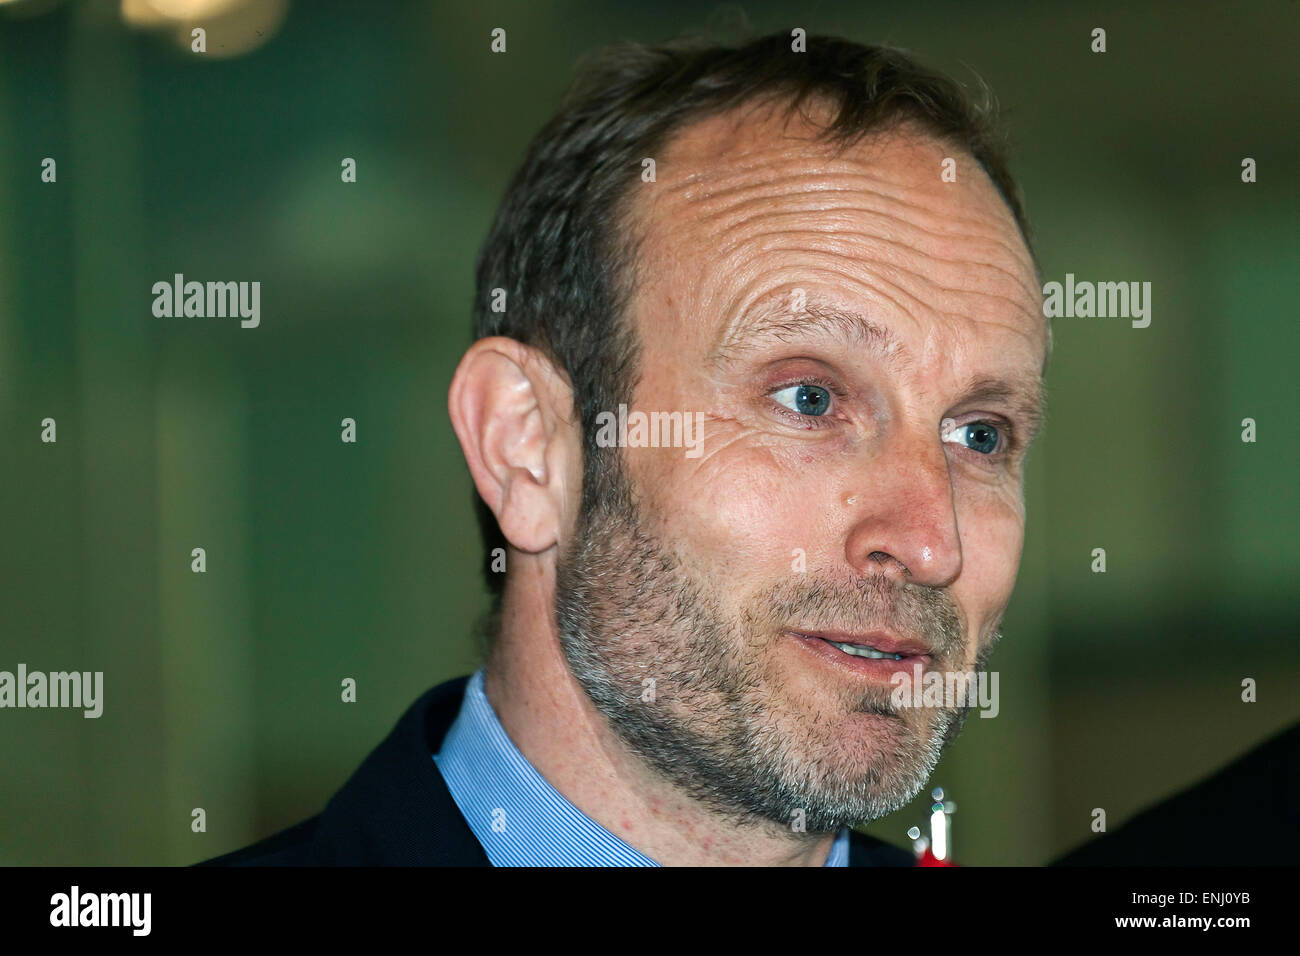 Elsinore, Denmark. 6th May, 2015. Danish foreign minister, Mr. Martin Lidegaard pictured at the press conference - Stock Image